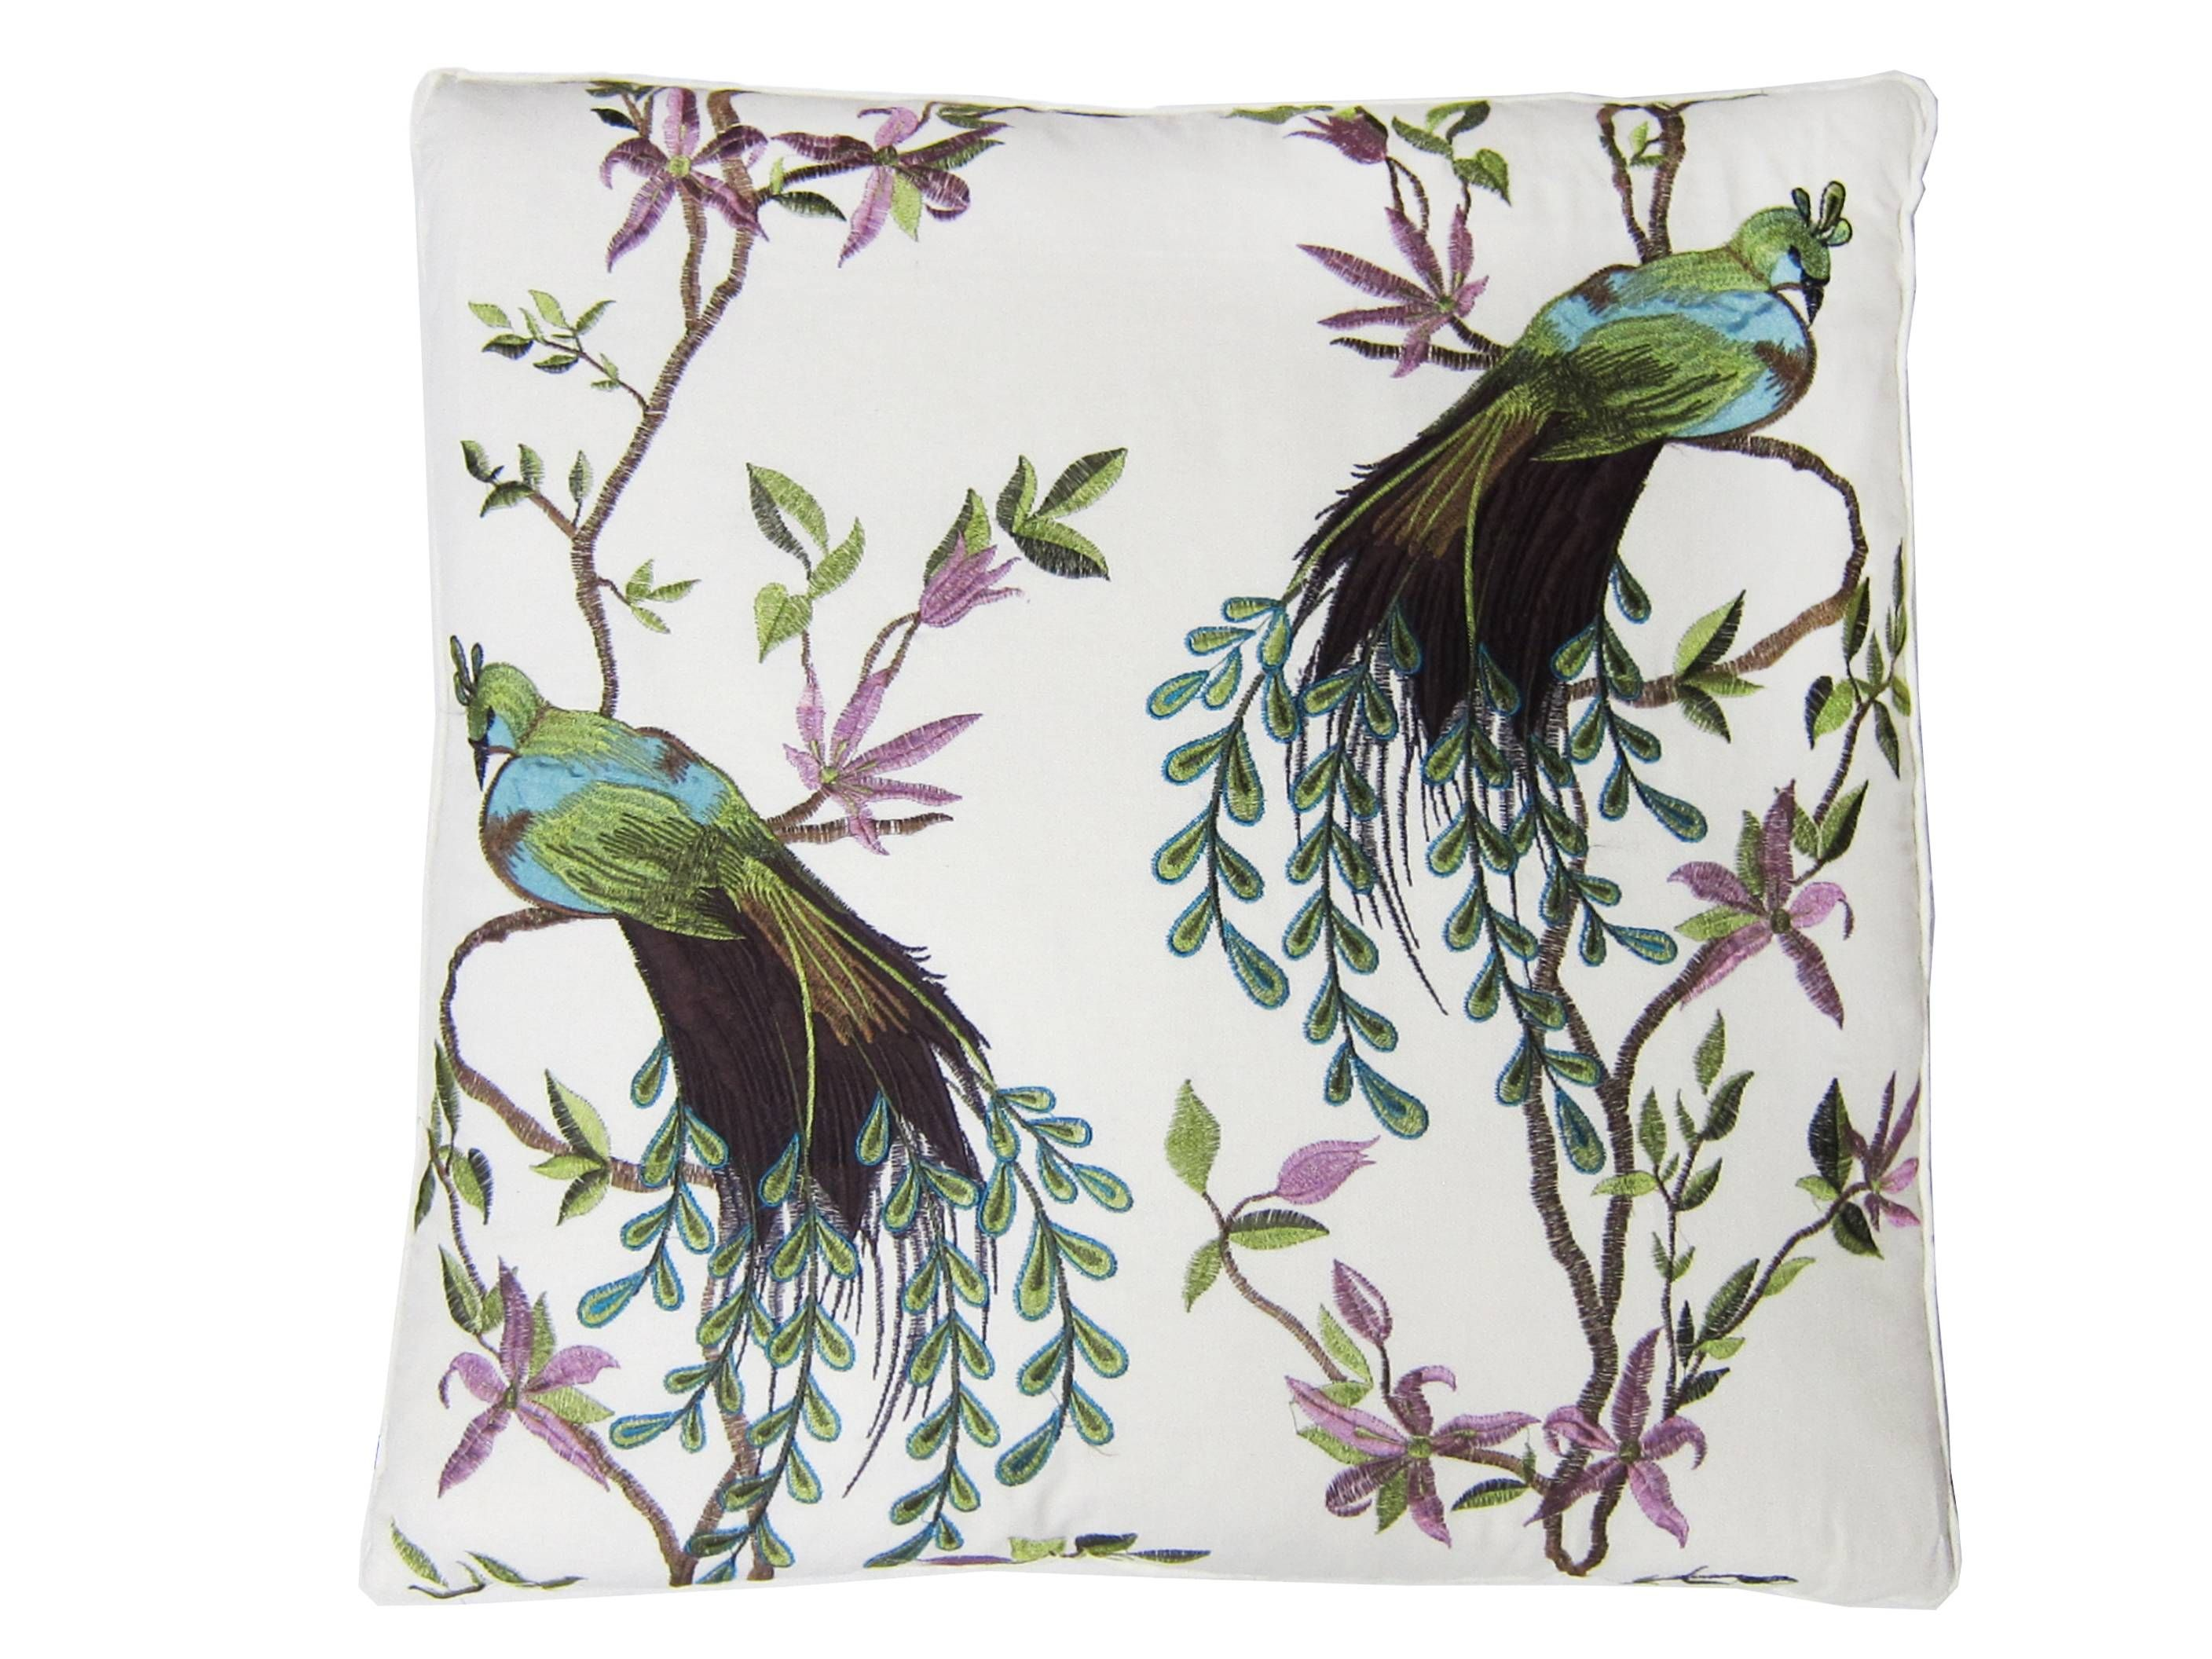 Fantasia pillow from Rodeo Home Pillows Pinterest Fantasia, Pillows and House